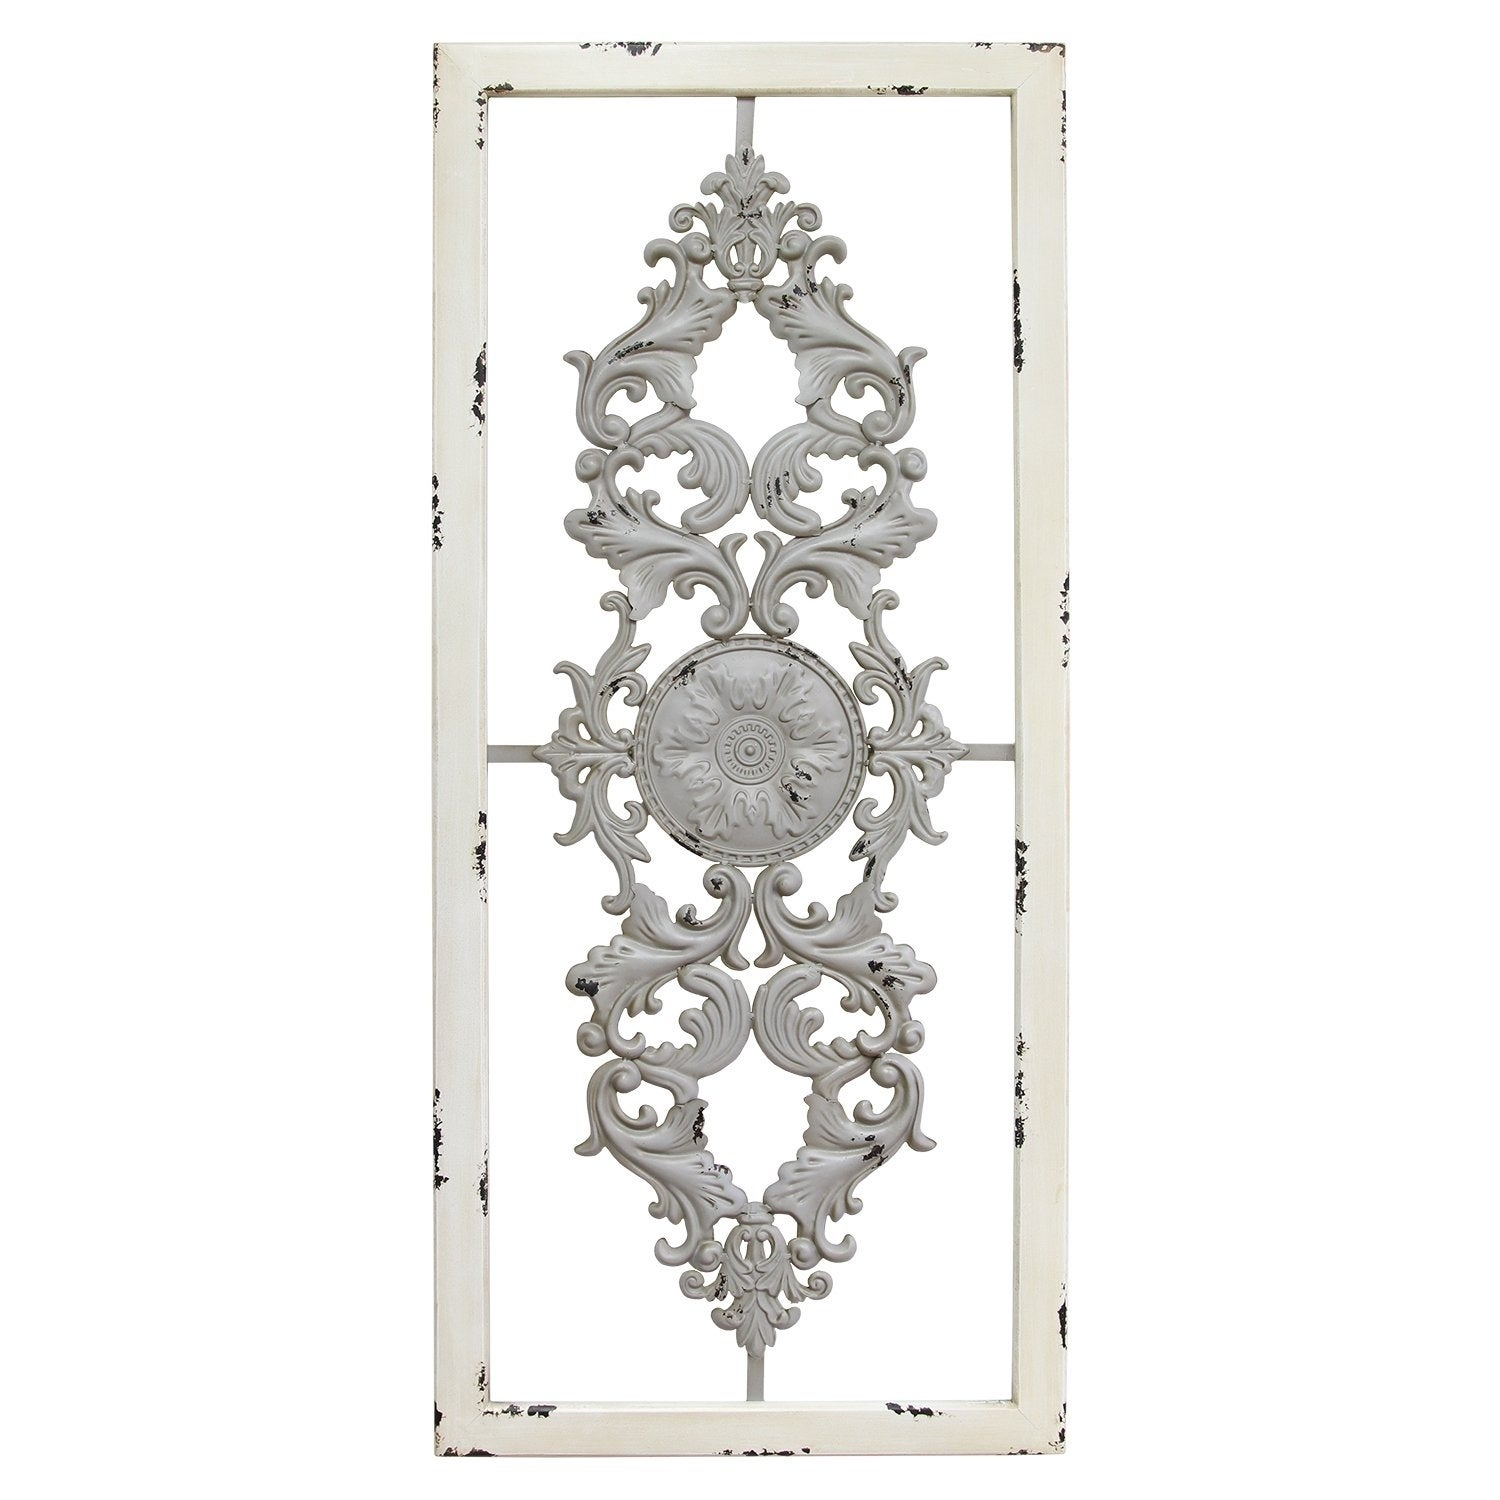 Details About Ornate Scroll Panel Grey Wall Decor White Frame 36X16 Metal  Wood Vintage Display in Ornate Scroll Wall Decor (Image 4 of 30)